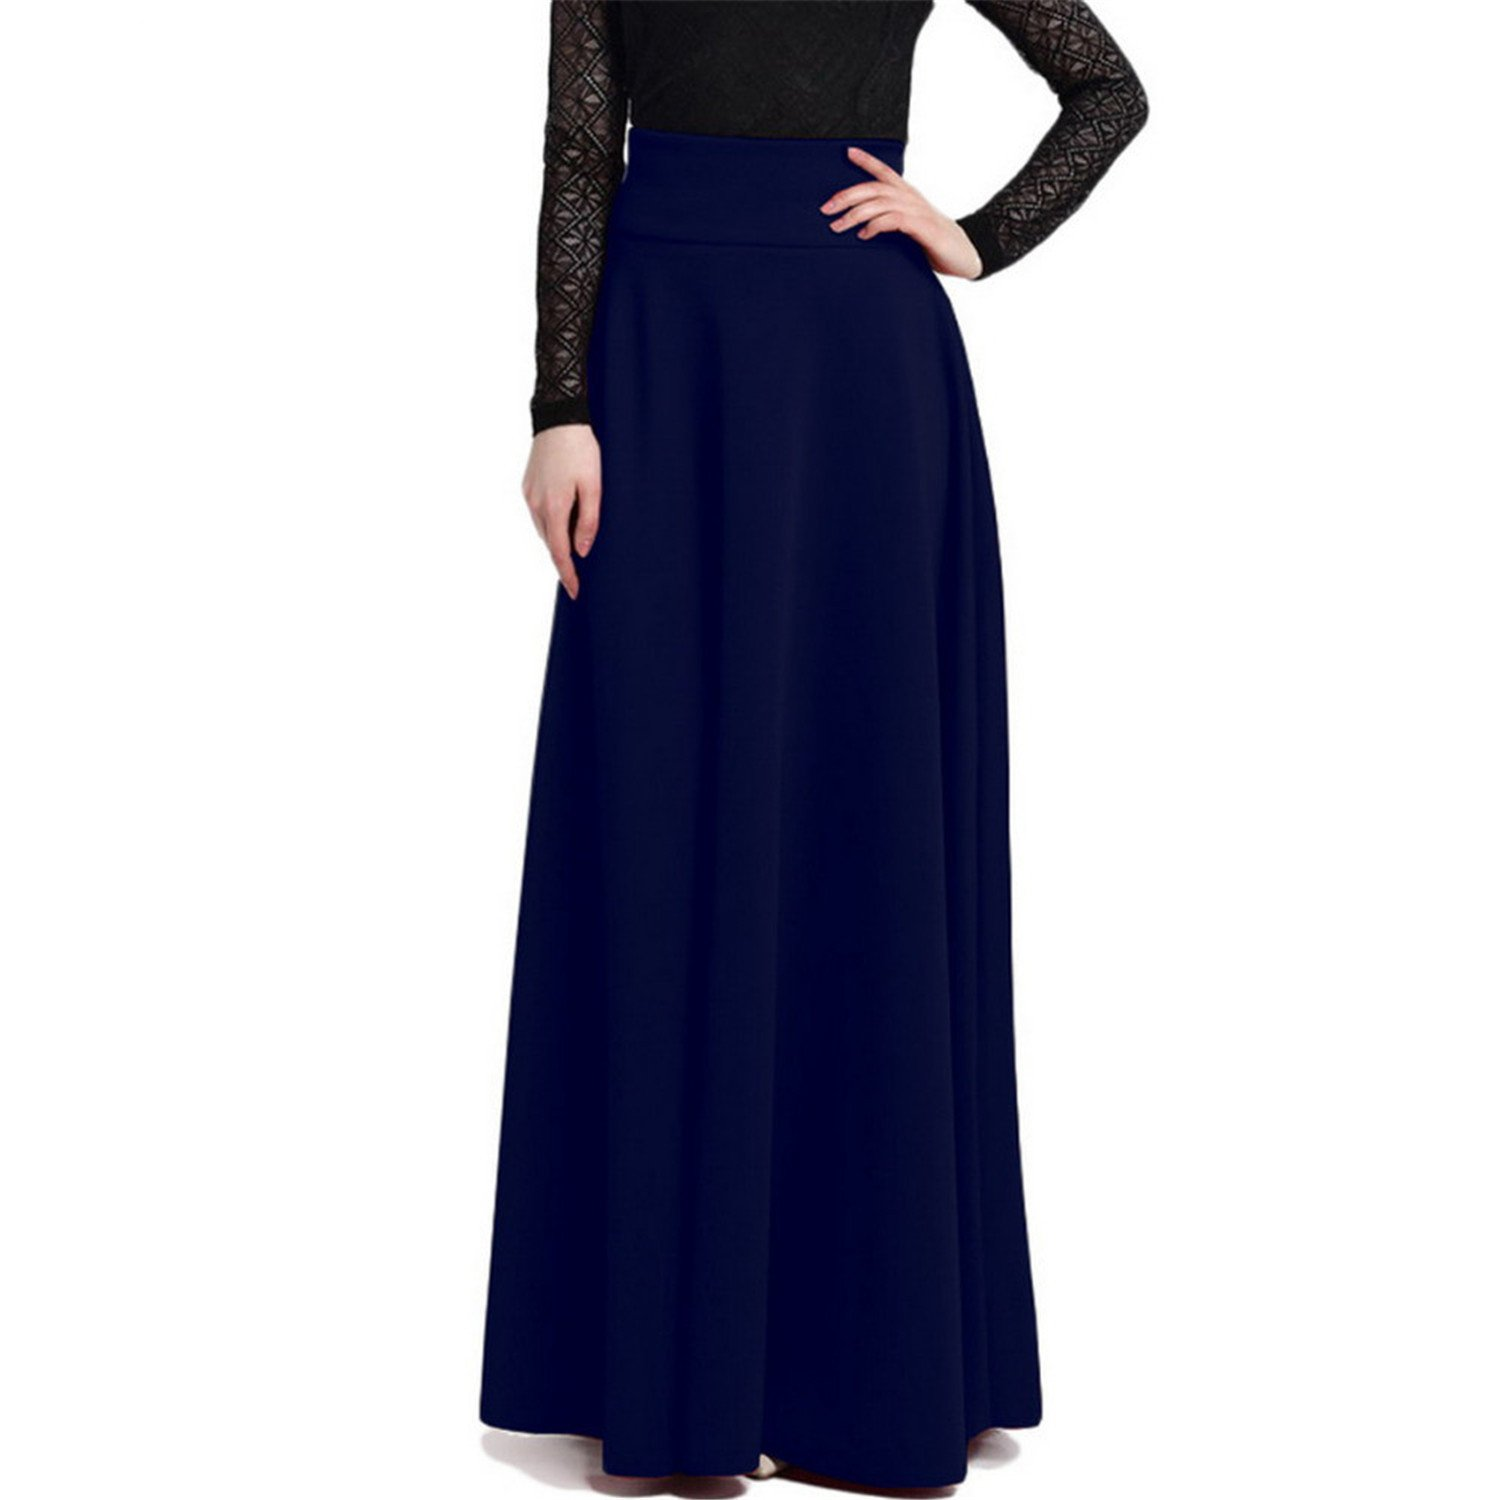 401320f4a5cde2 Chiced High Waist Pleat Elegant Skirt Solid Color Long Skirts Women Plus  Size at Amazon Women's Clothing store: